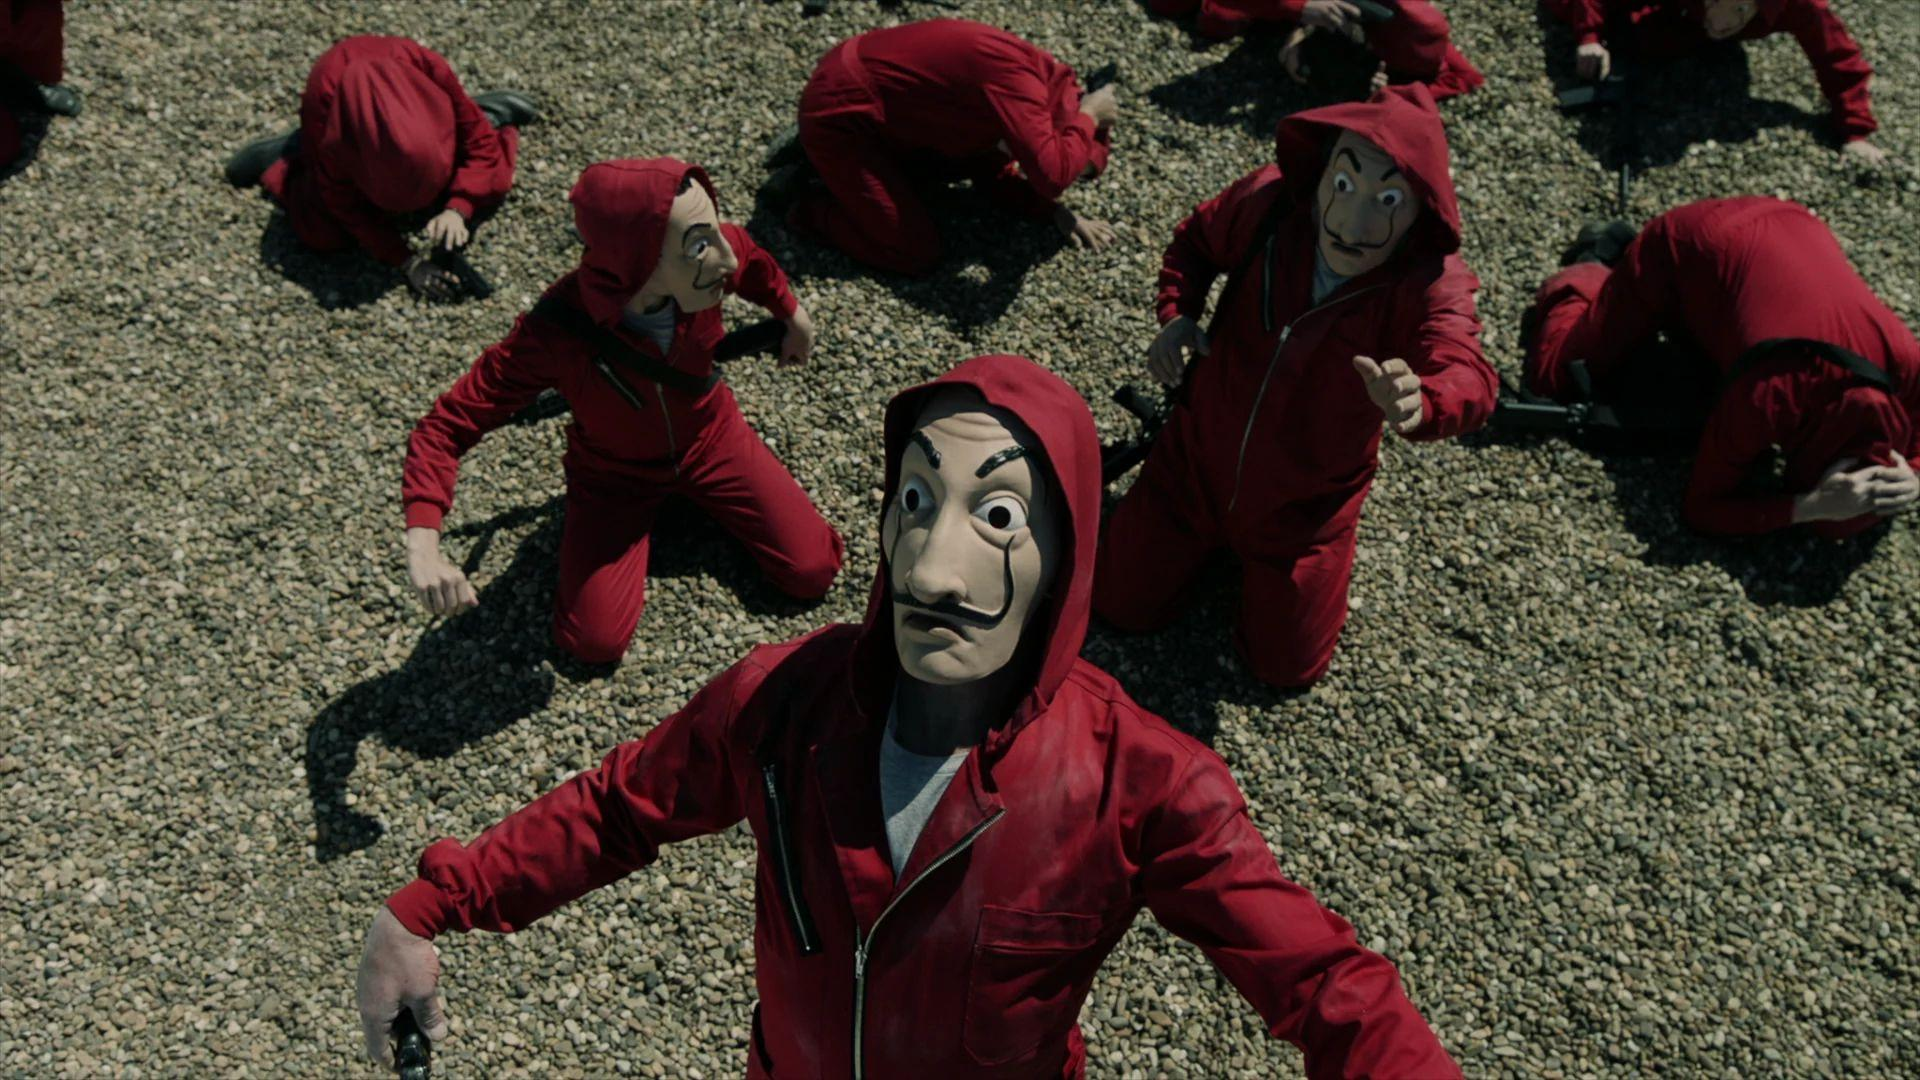 La Casa De Papel Wallpaper Cave